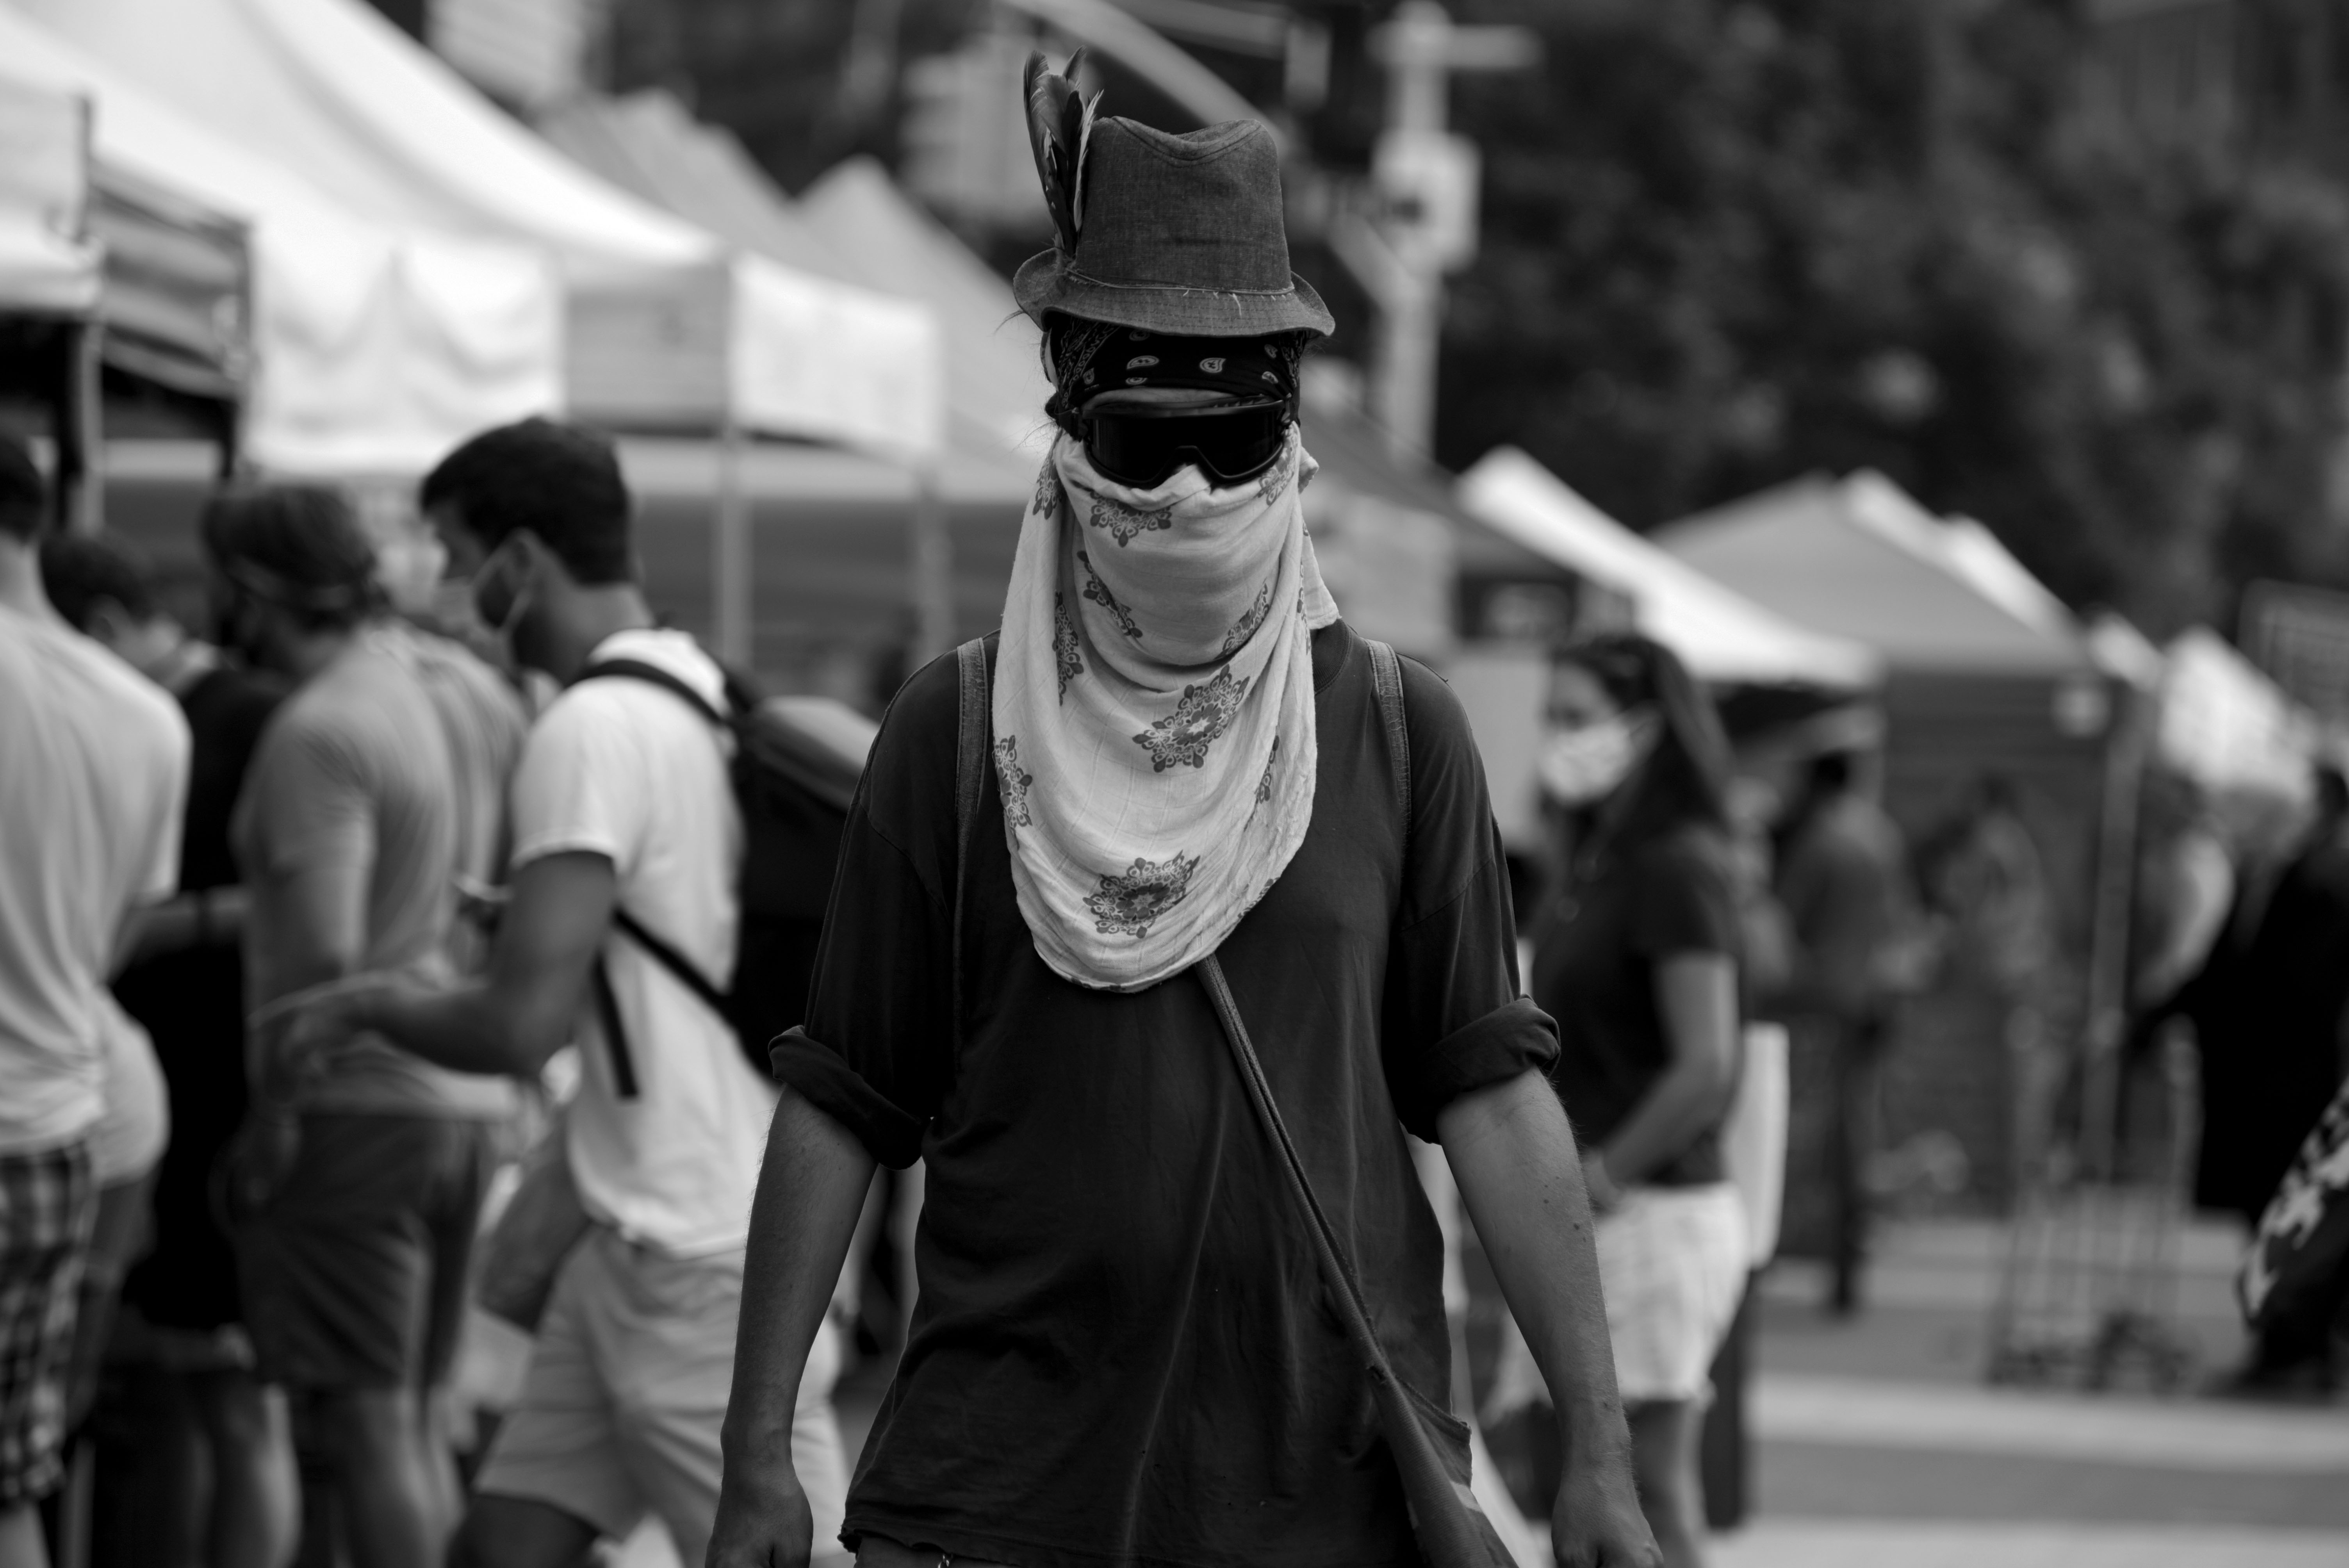 August USP guy face covered F